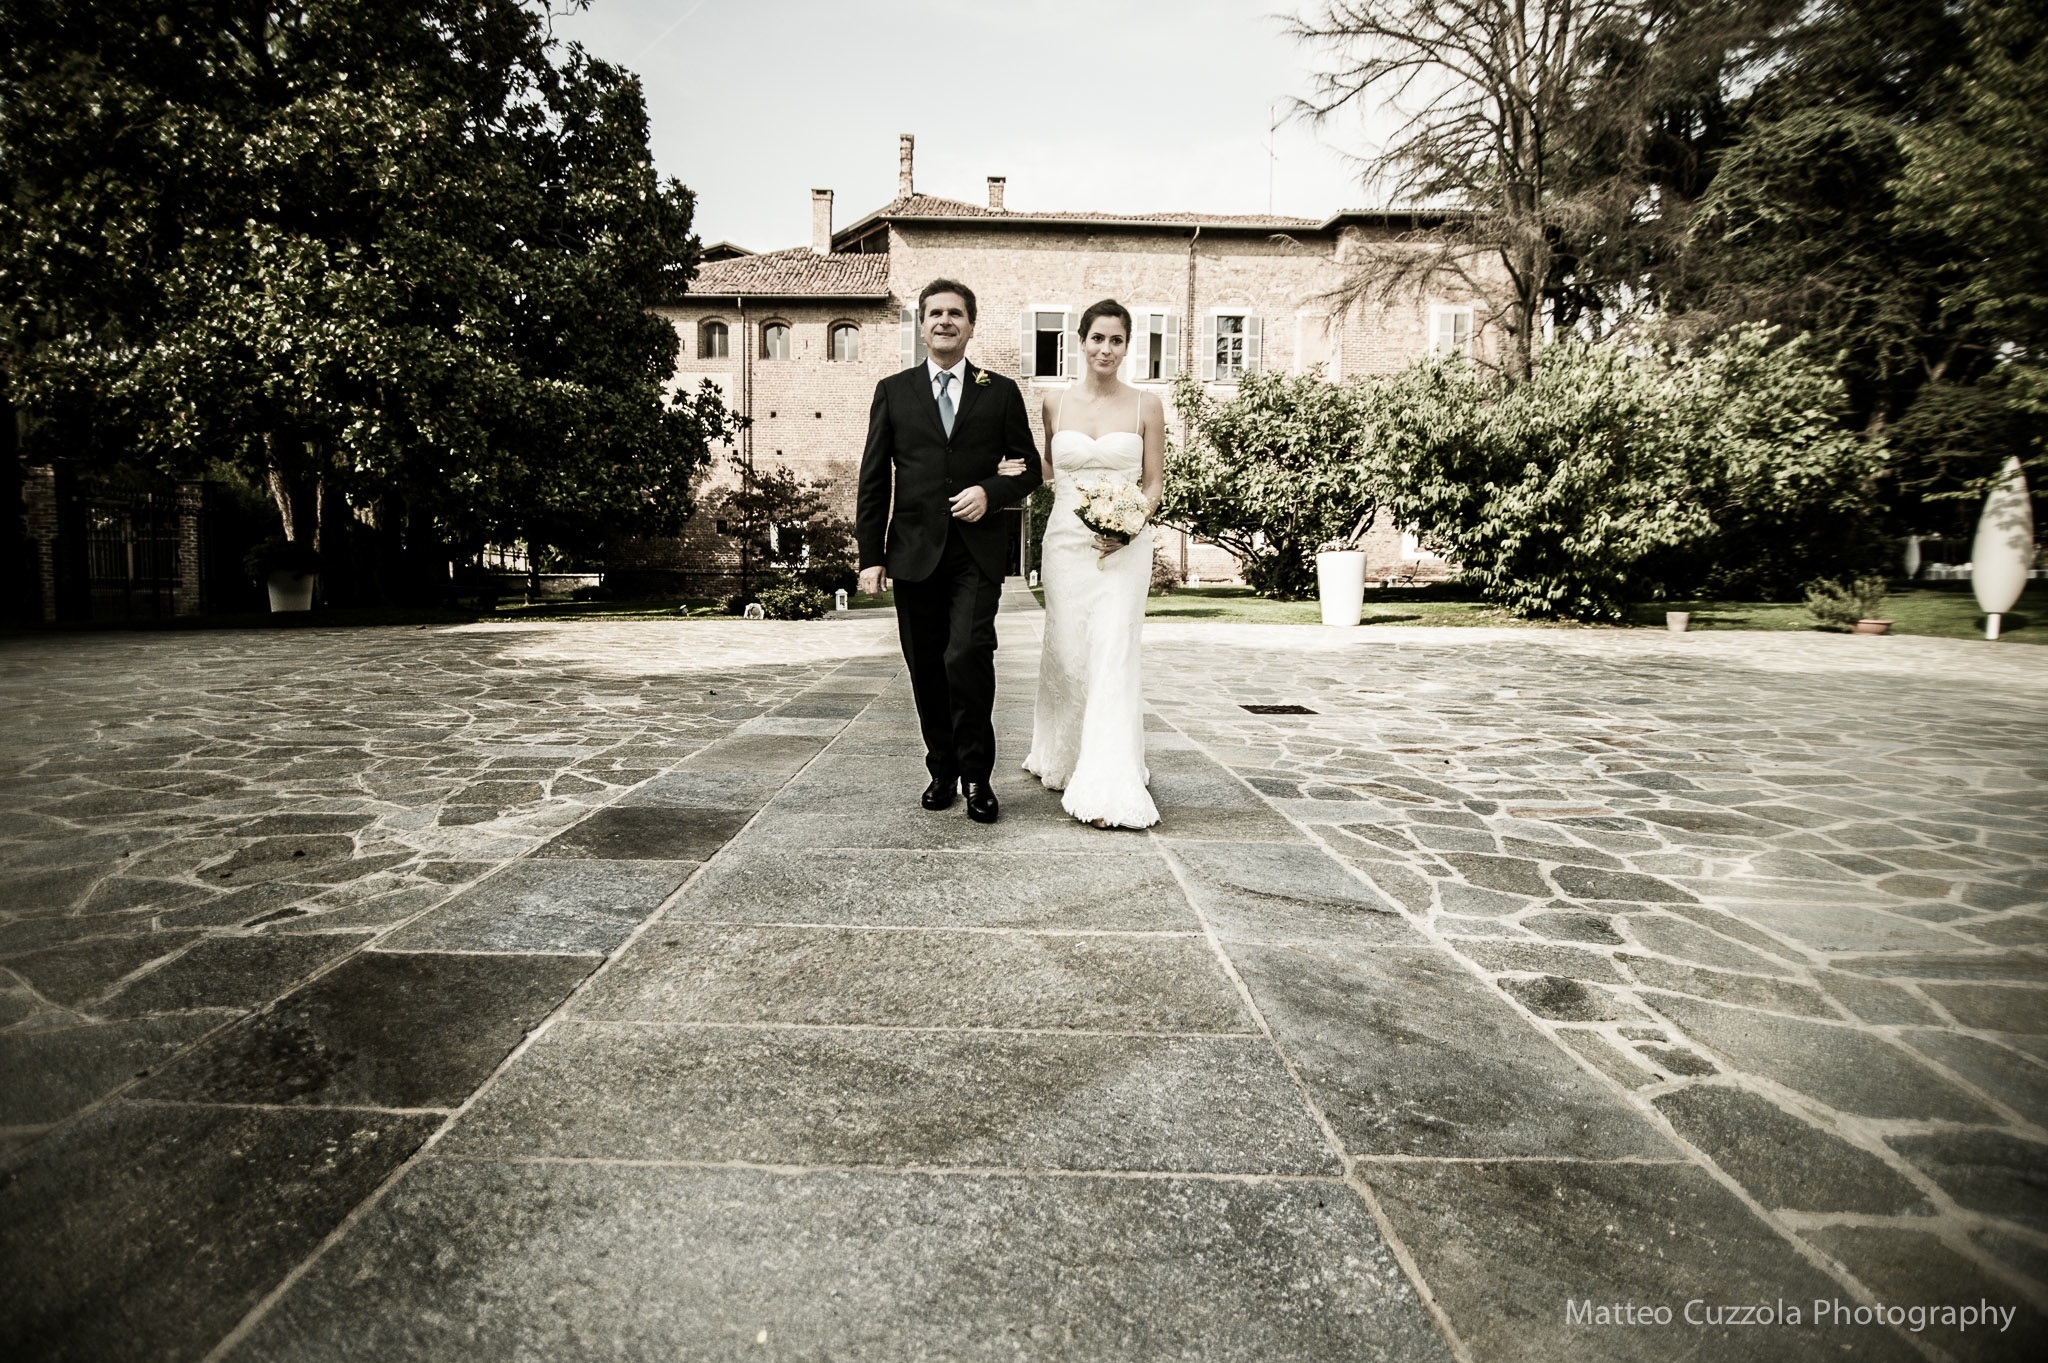 wedding in a castle, Italy